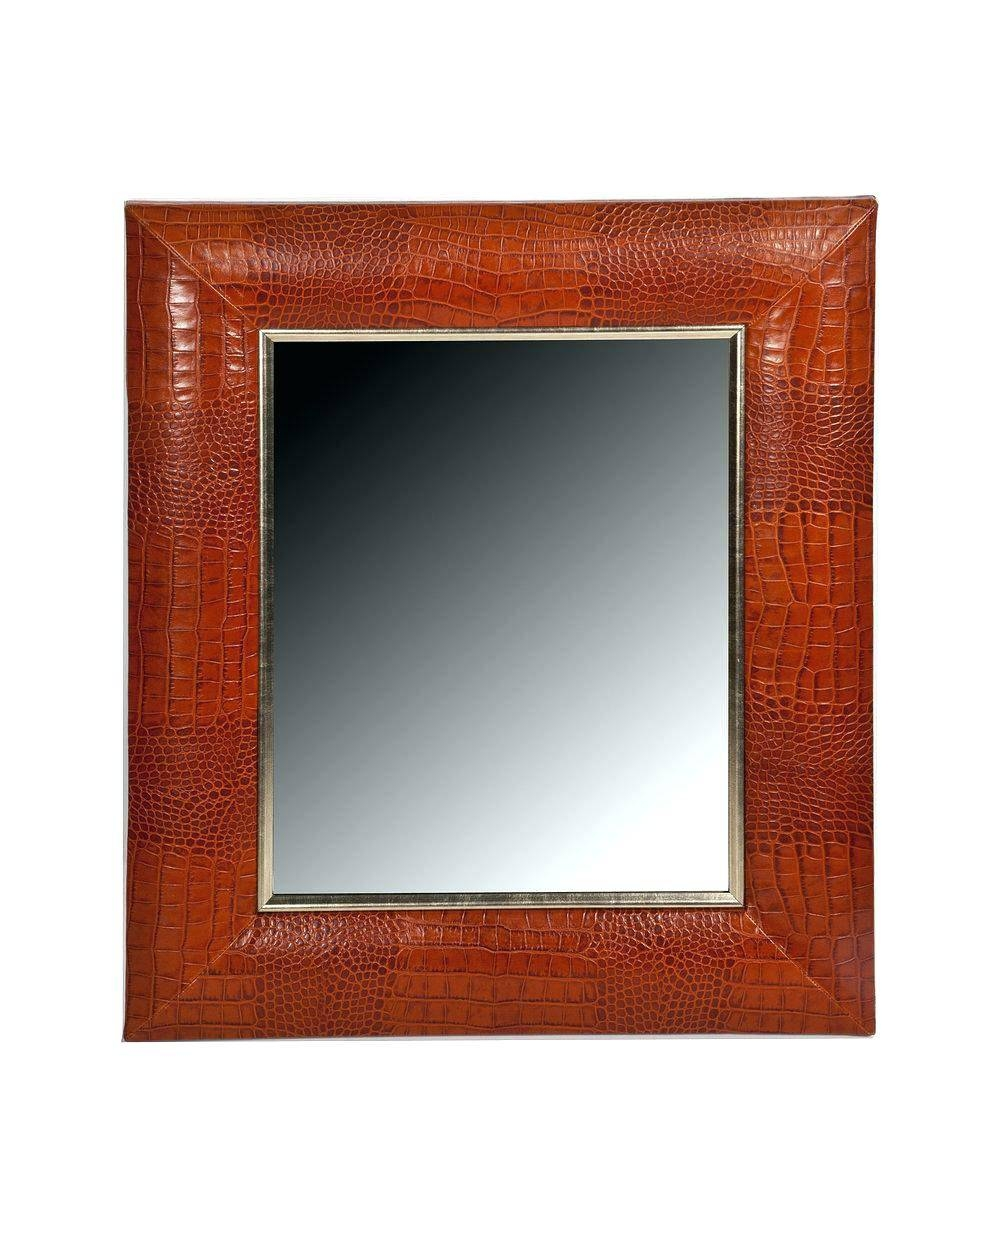 Wall Mirrors ~ Celine Black Leather Round Wall Mirror Leather inside Black Leather Framed Mirrors (Image 9 of 15)